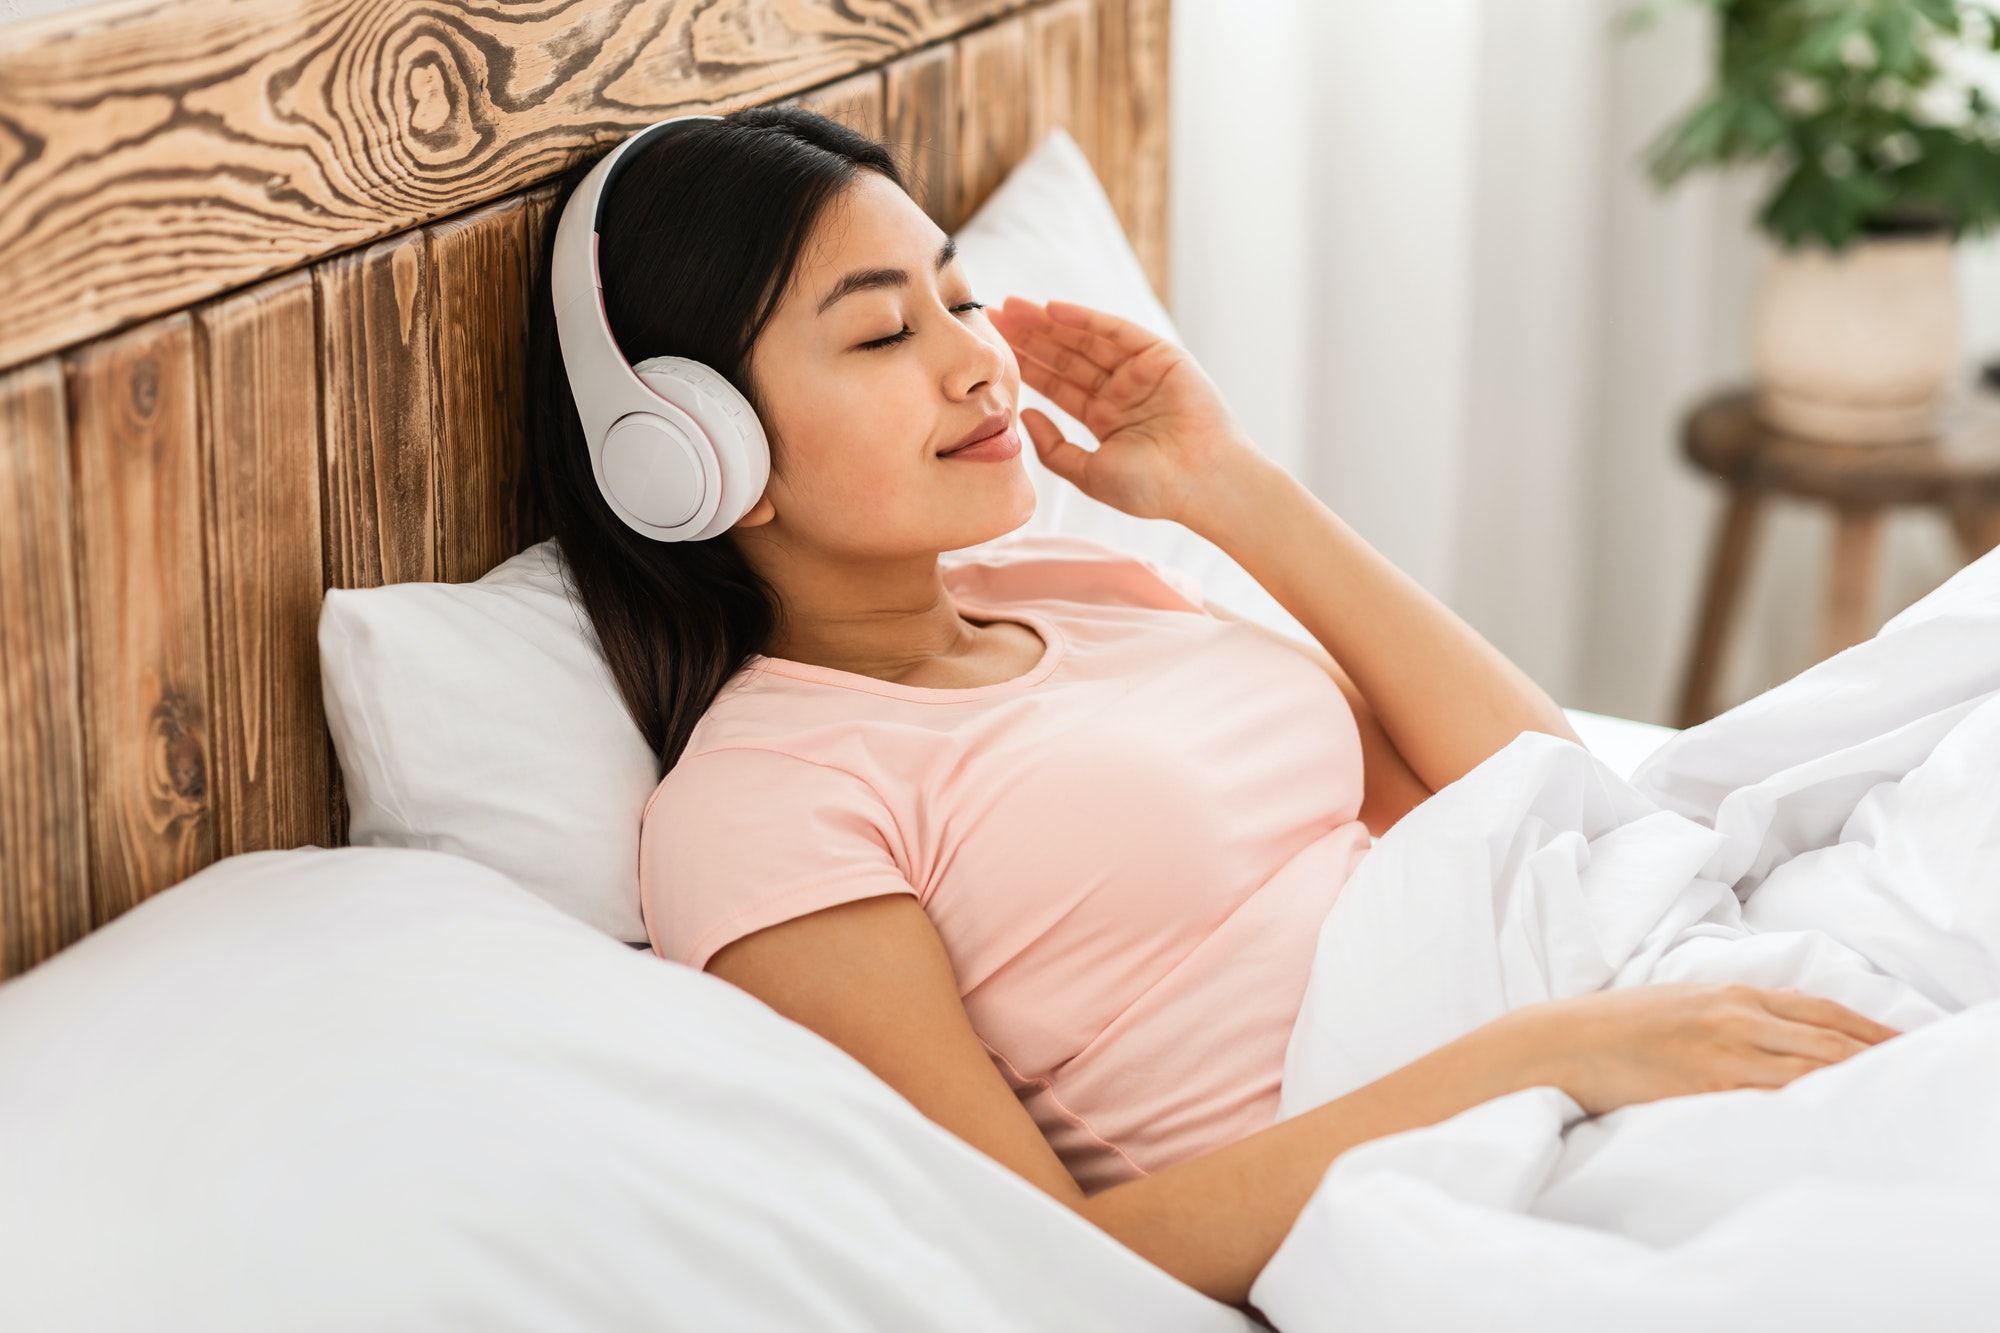 Chinese Girl In Earphones Listening To Podcast Lying In Bed